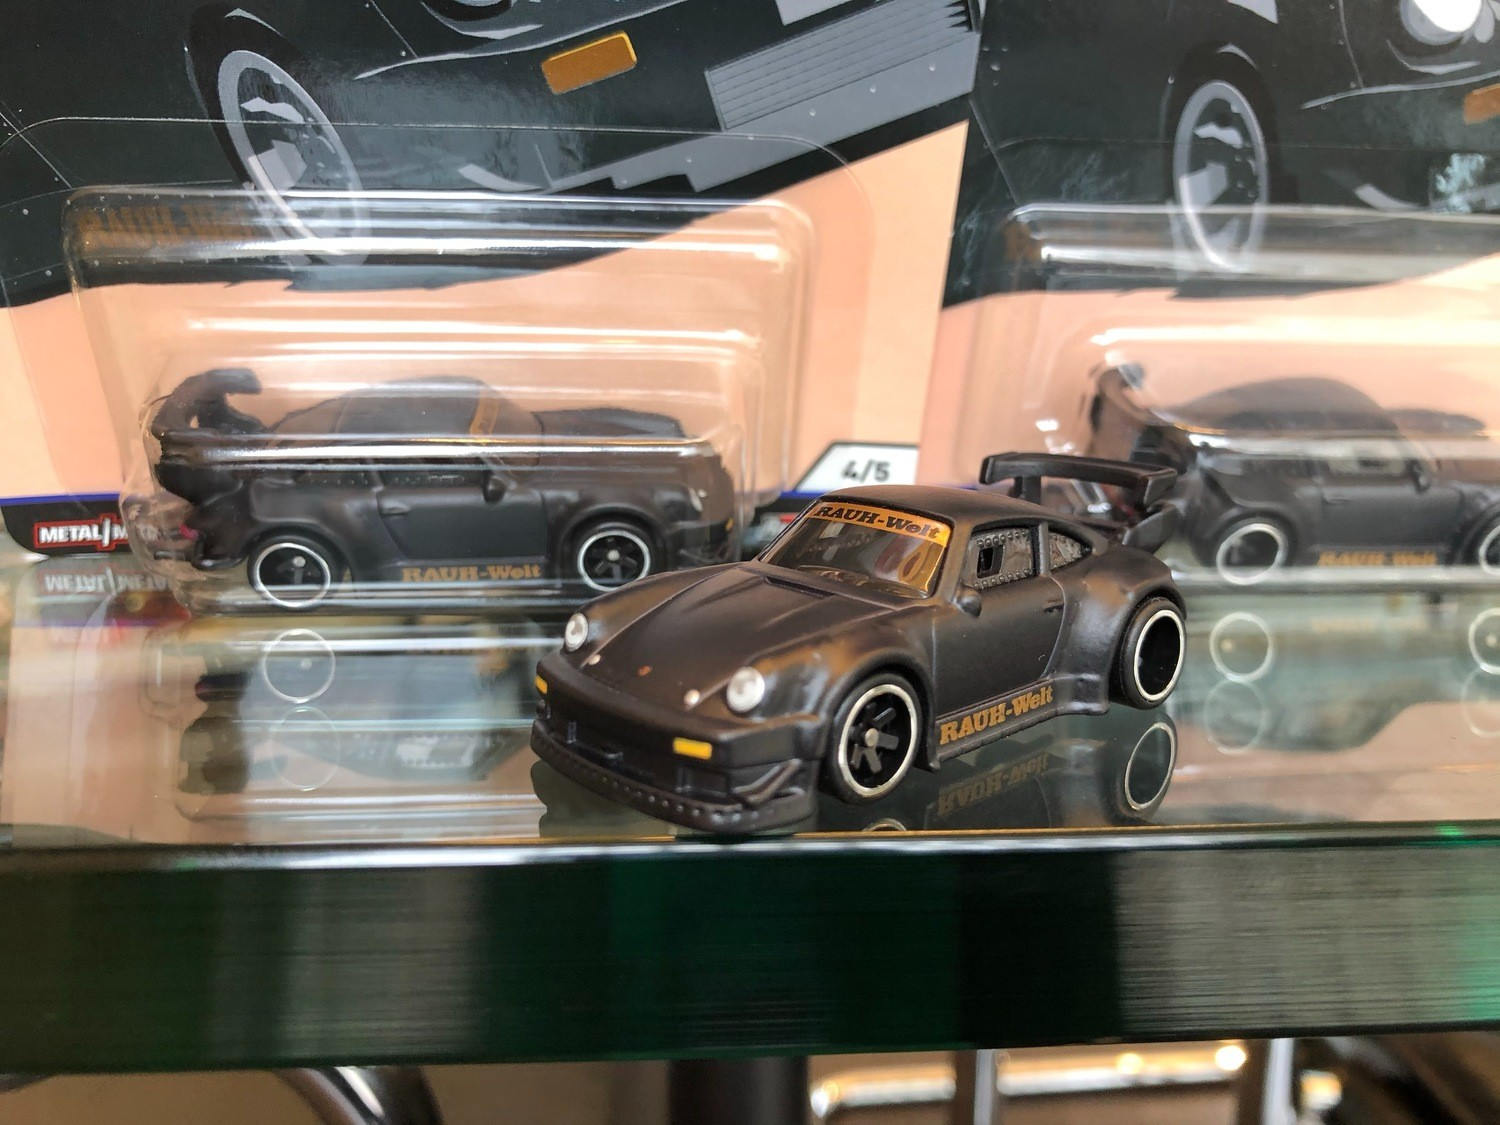 RWB x Hot wheels RWB 930 Stella Artois limited 500 official